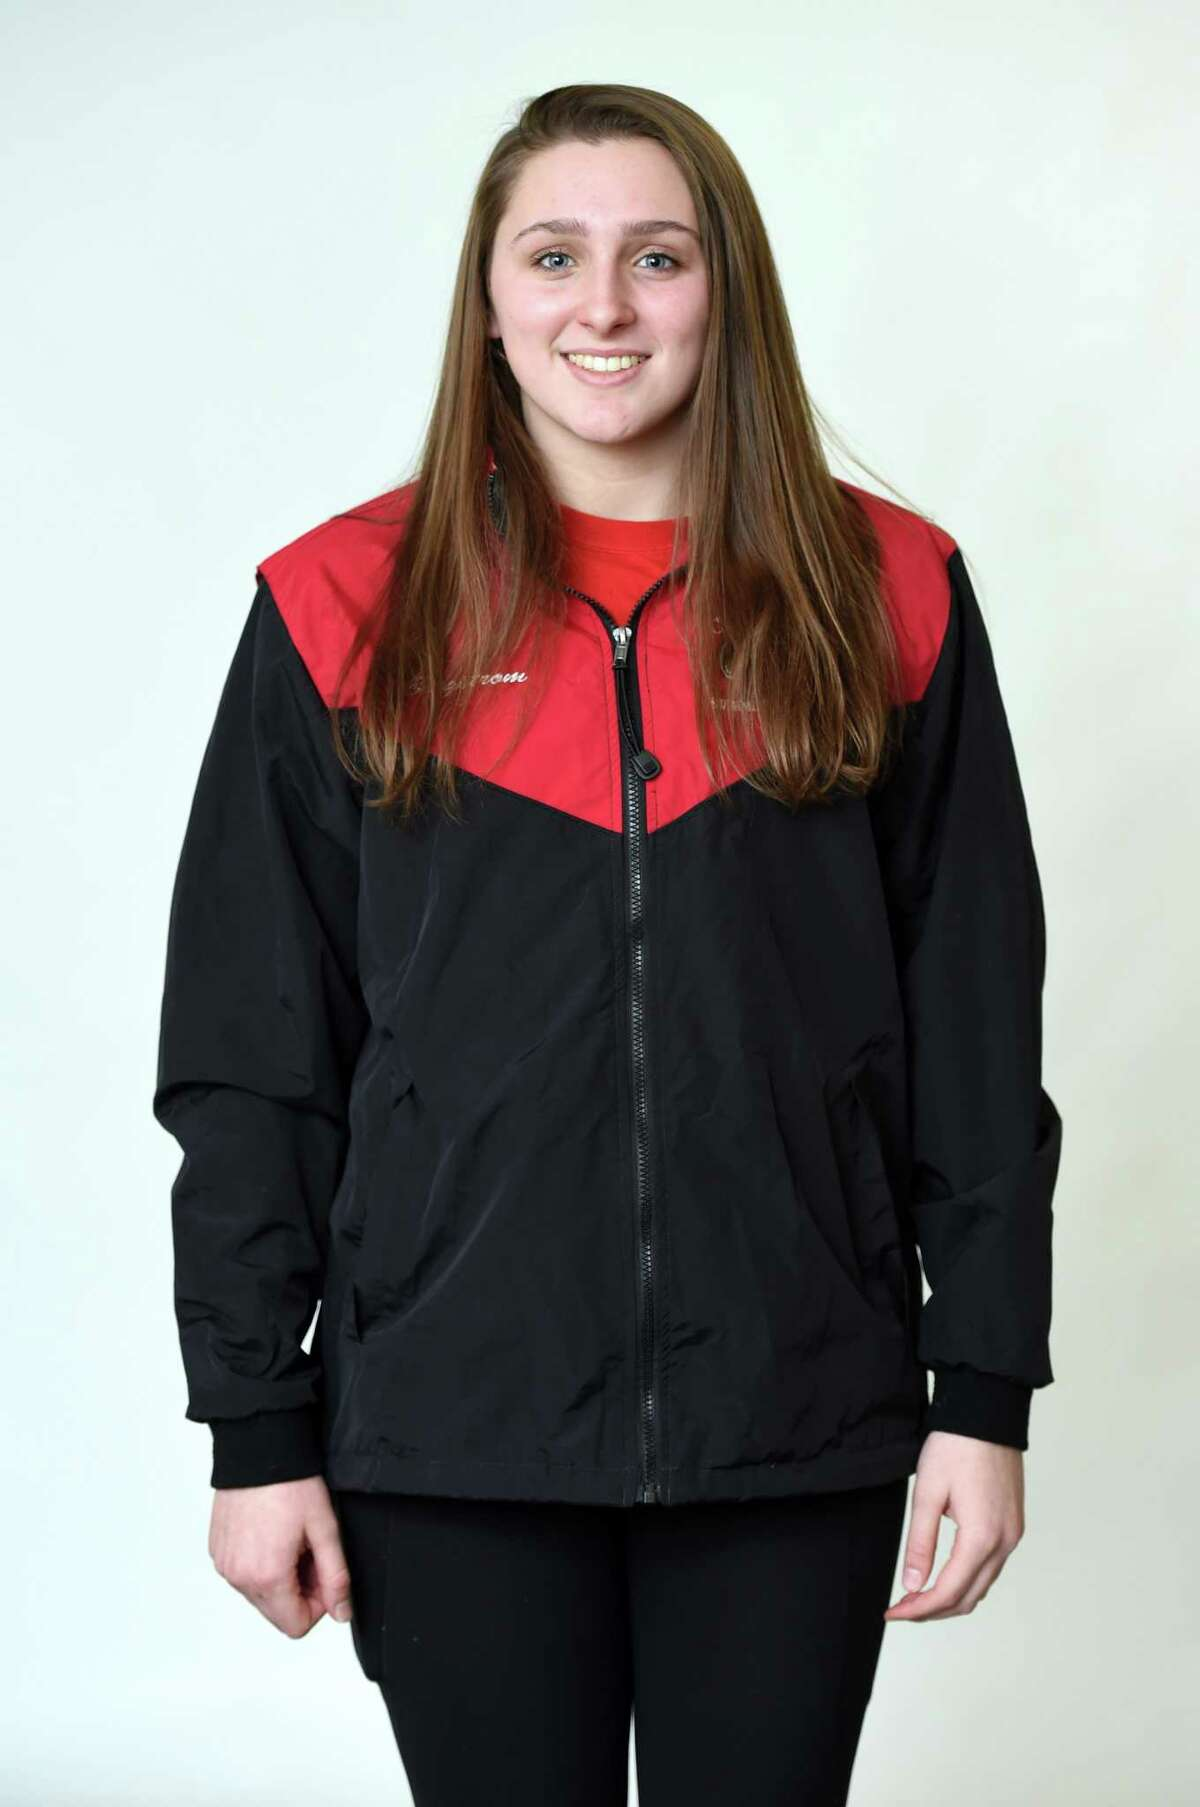 All-Area swimmer Nora Bergstrom of Cheshire High School photographed at the New Haven Register on December 4, 2019.